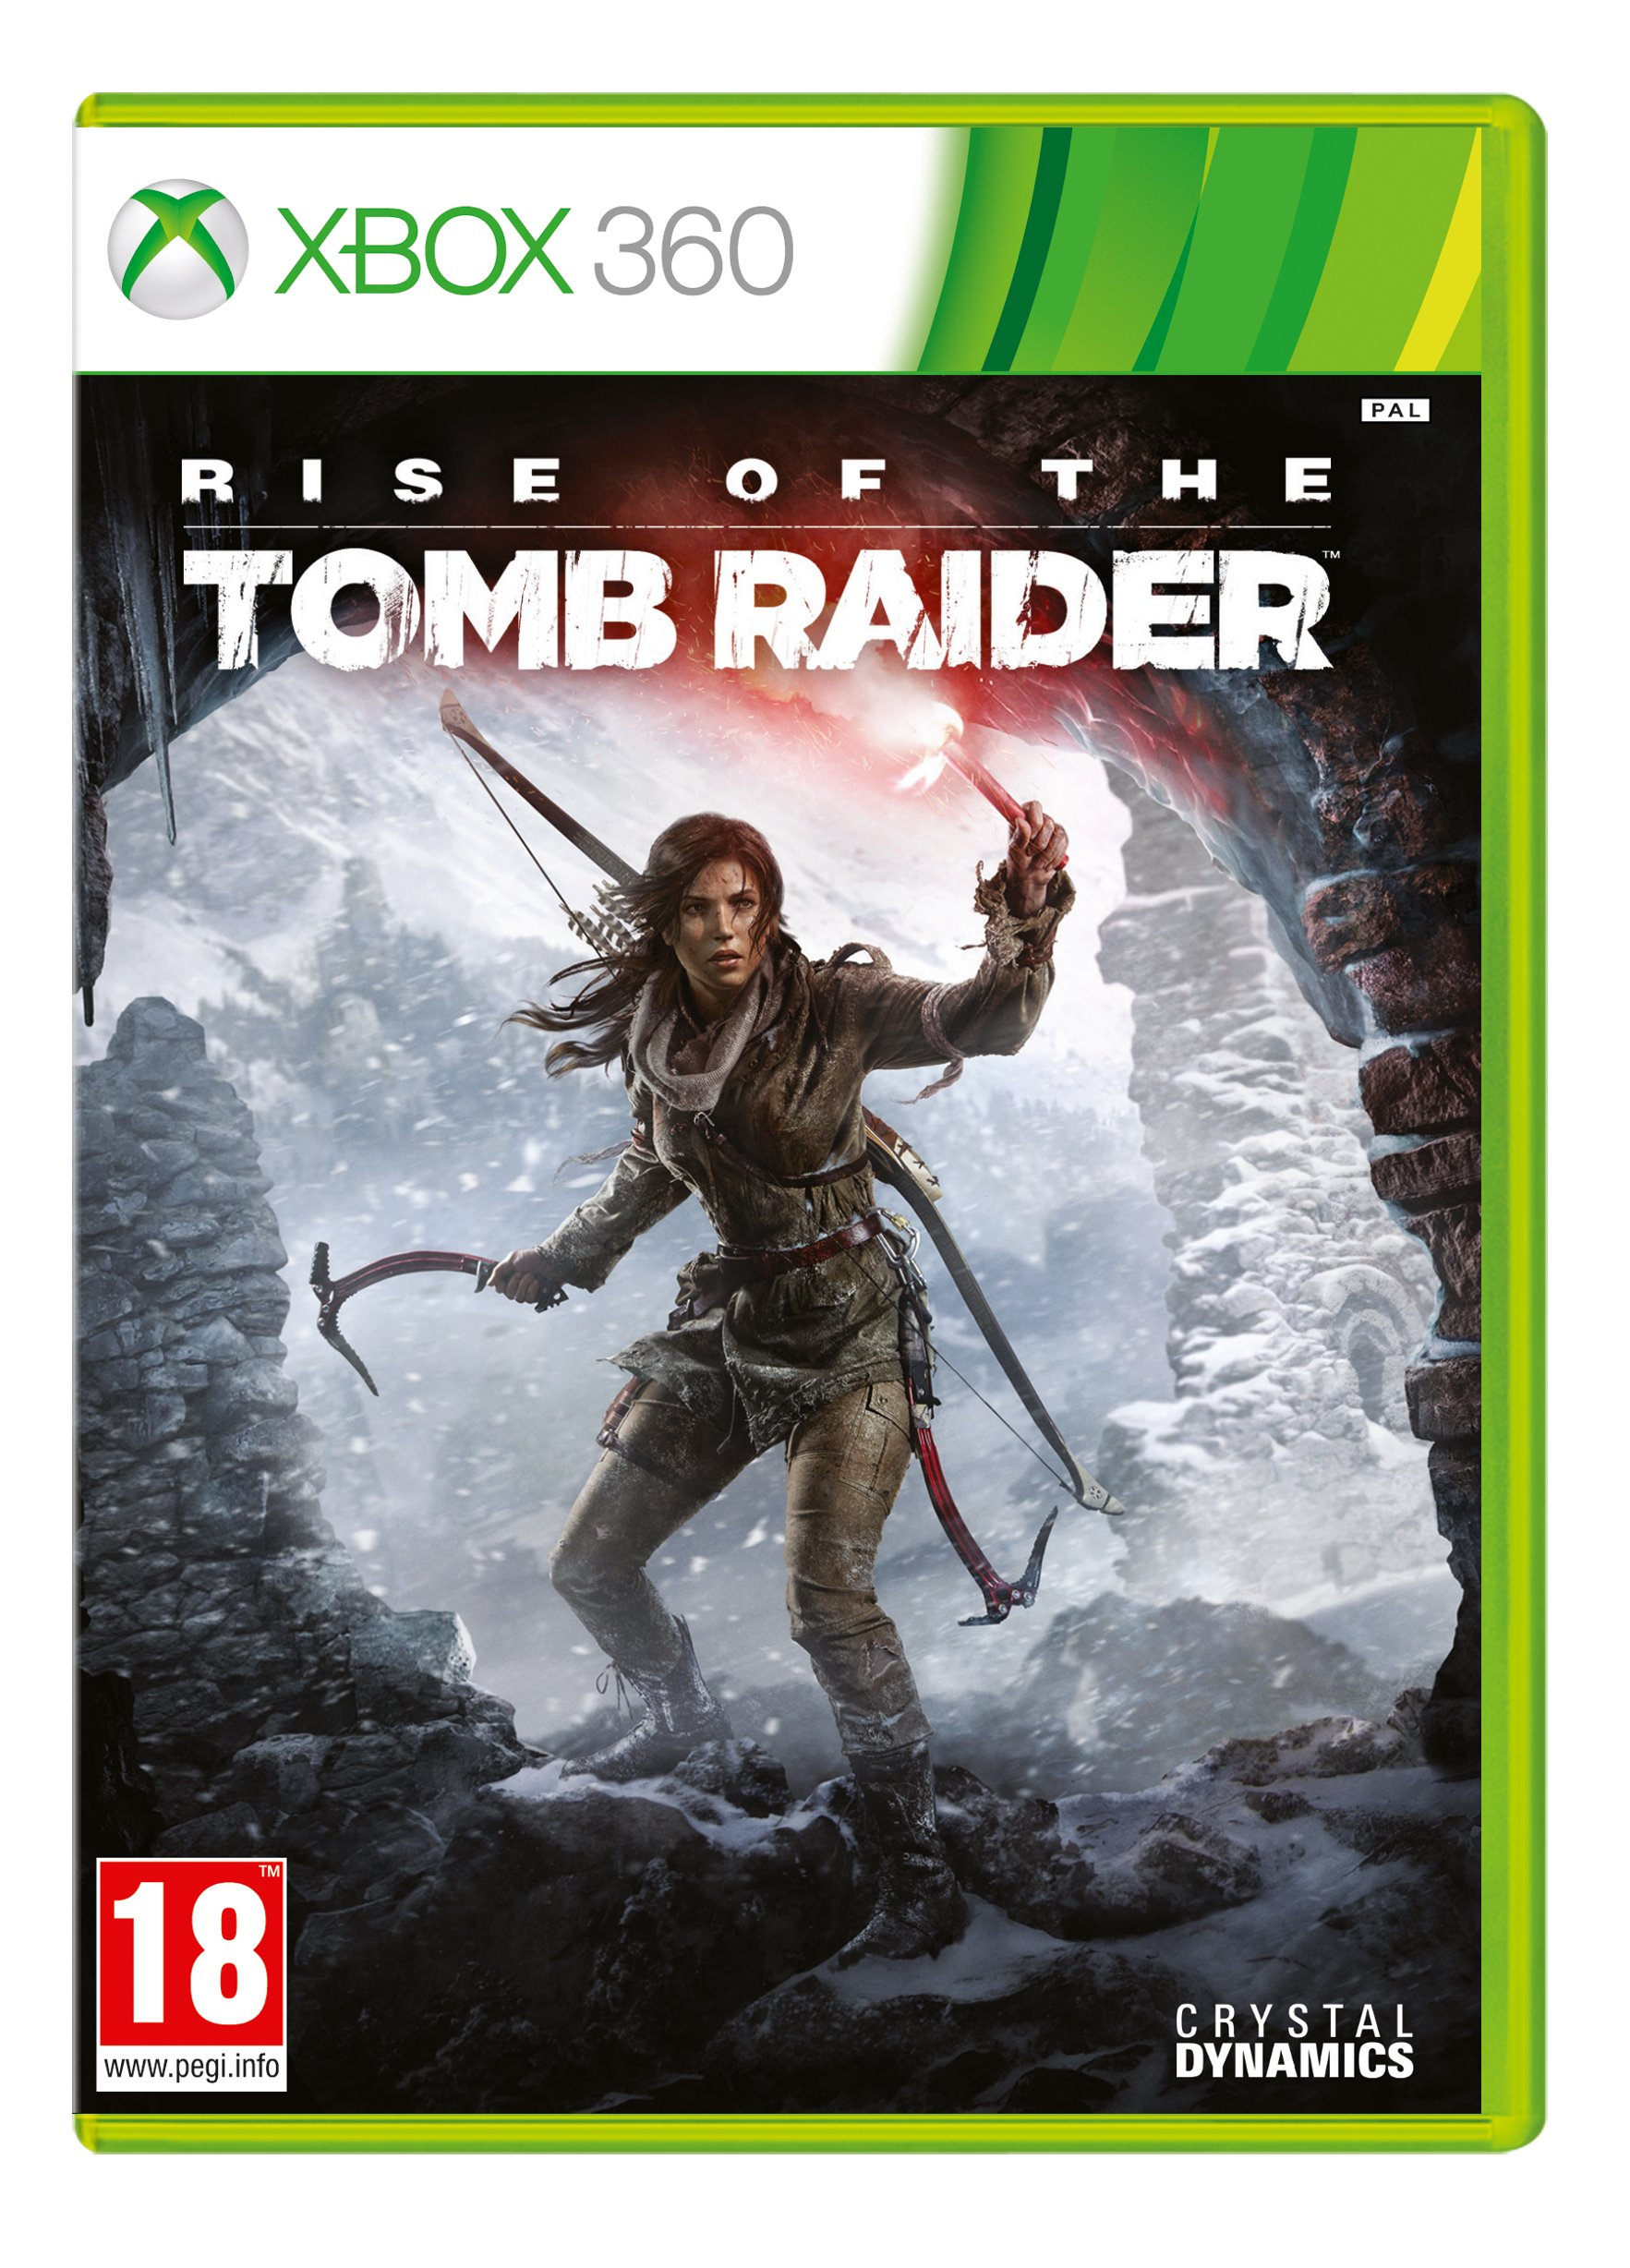 Rise of the Tomb Raider (Xbox 360) product image